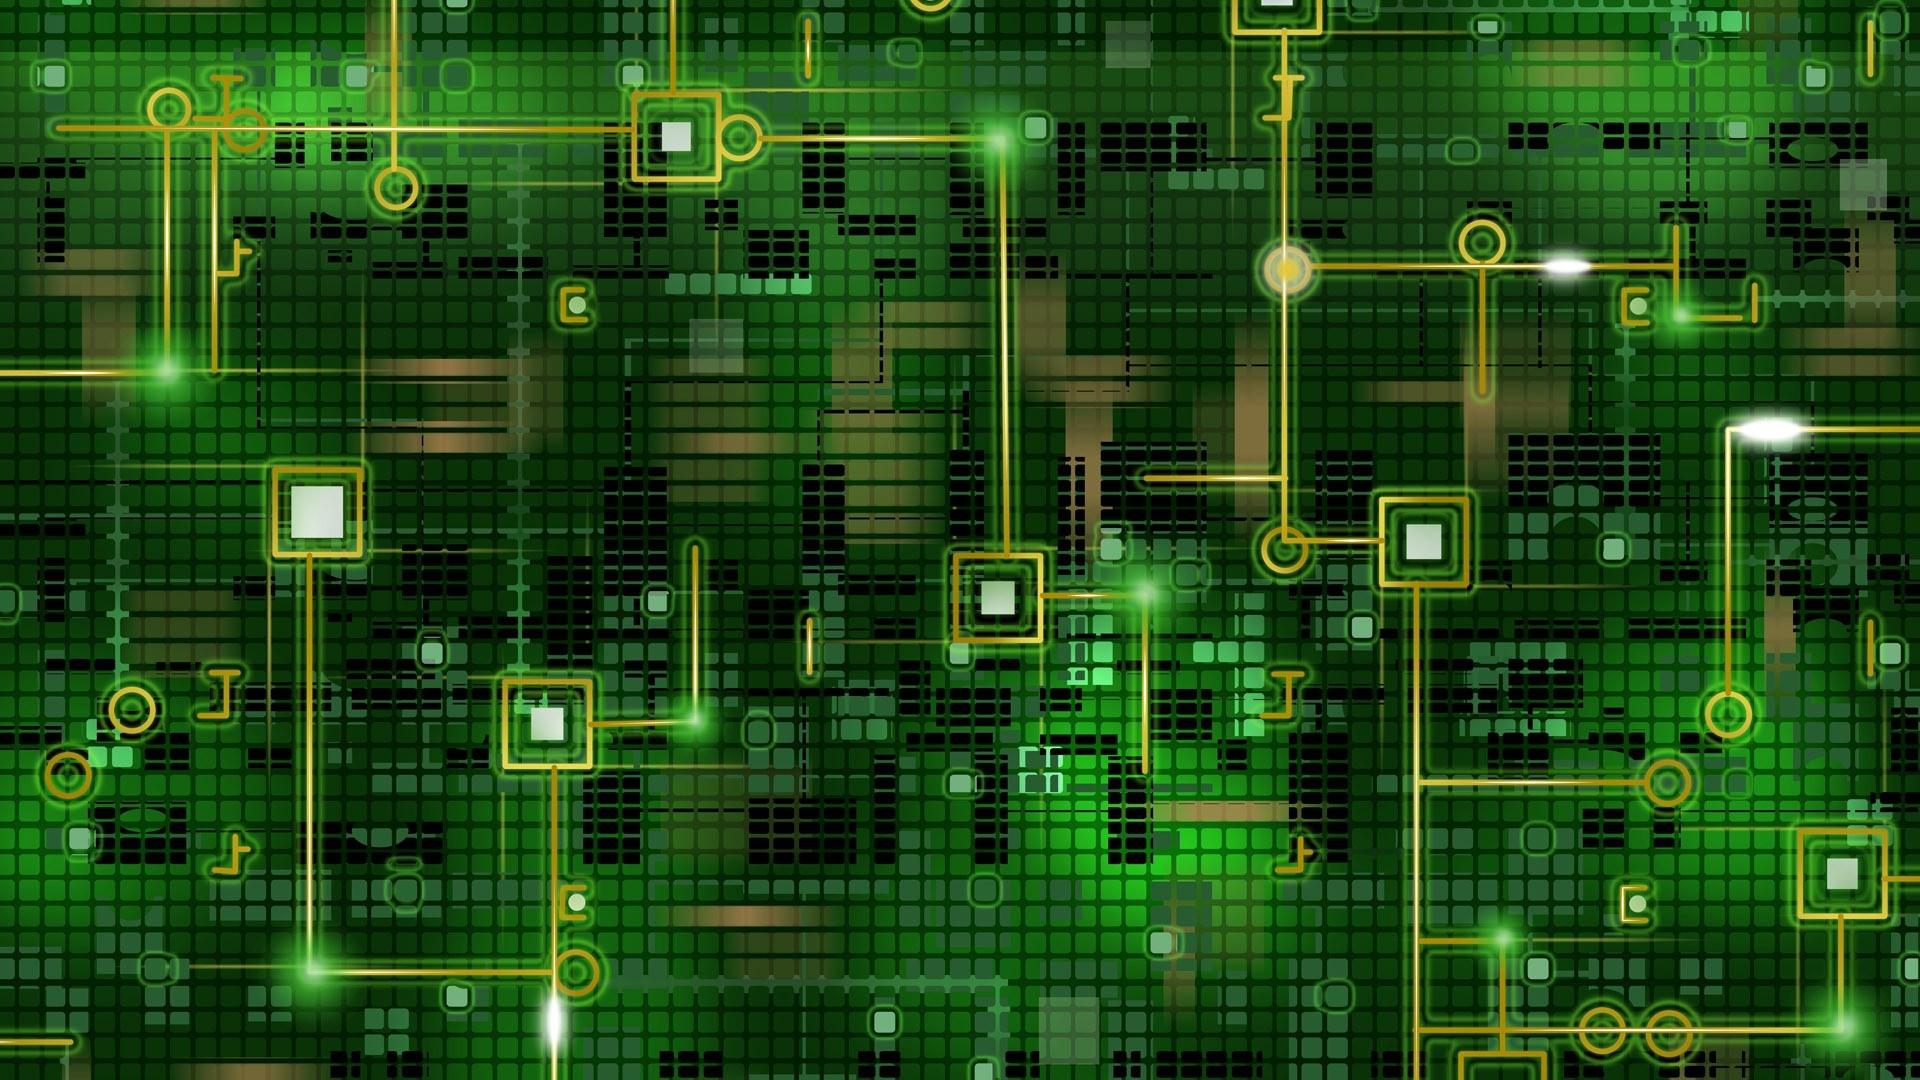 chip-grid-background-black-green-line-circuit-1920x1080-1920×1080-wallpaper-wp3803765